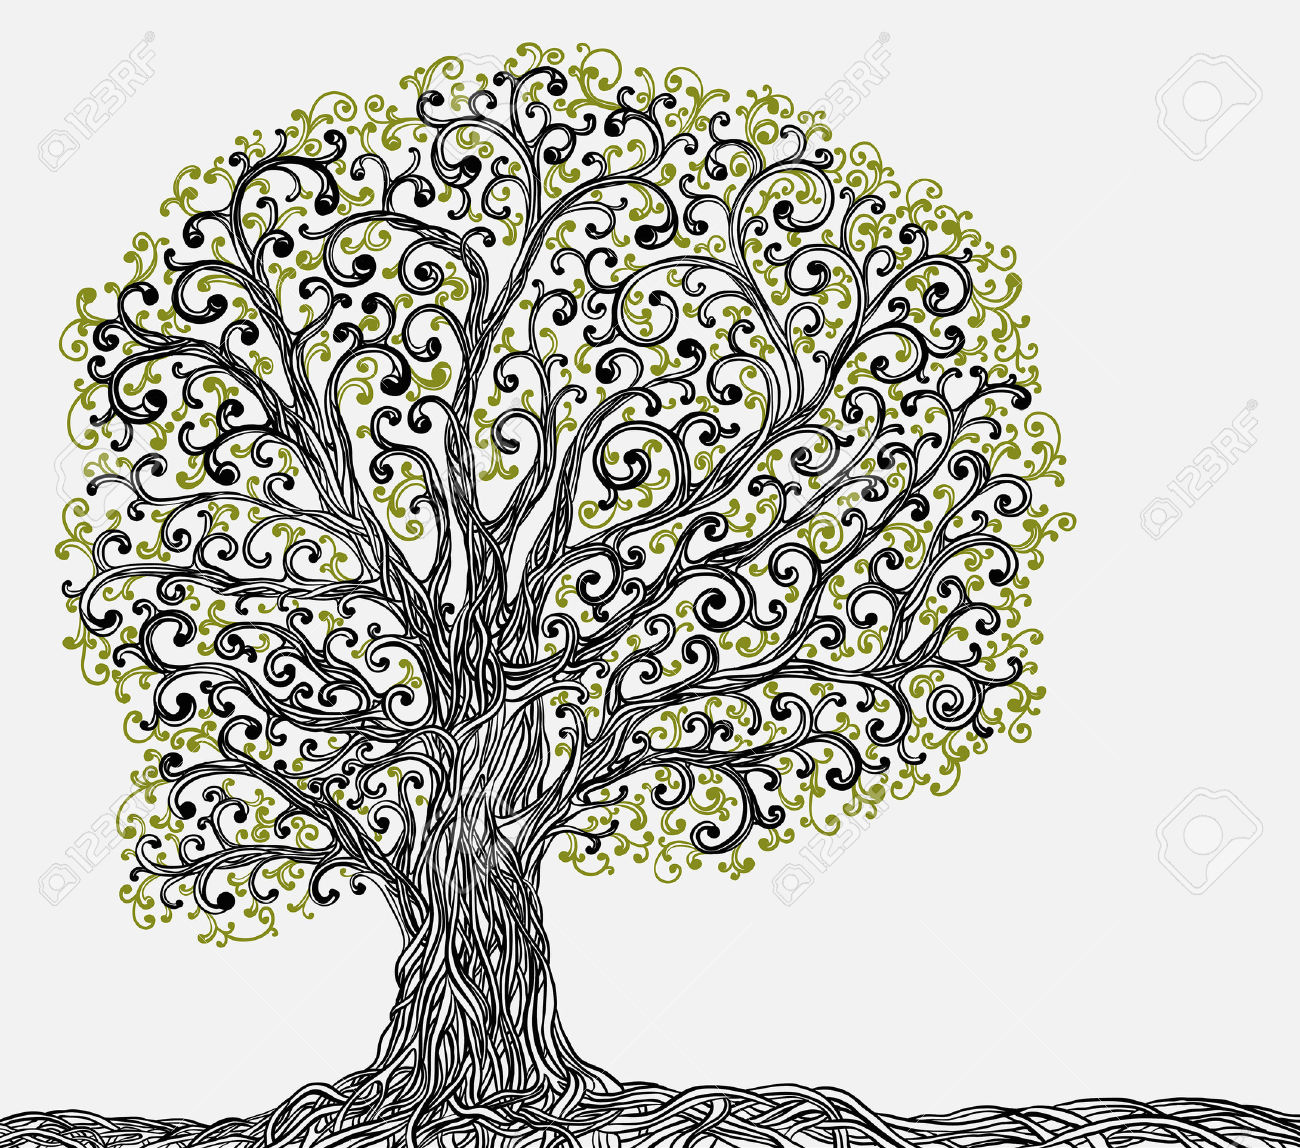 Twisted Tree coloring #19, Download drawings